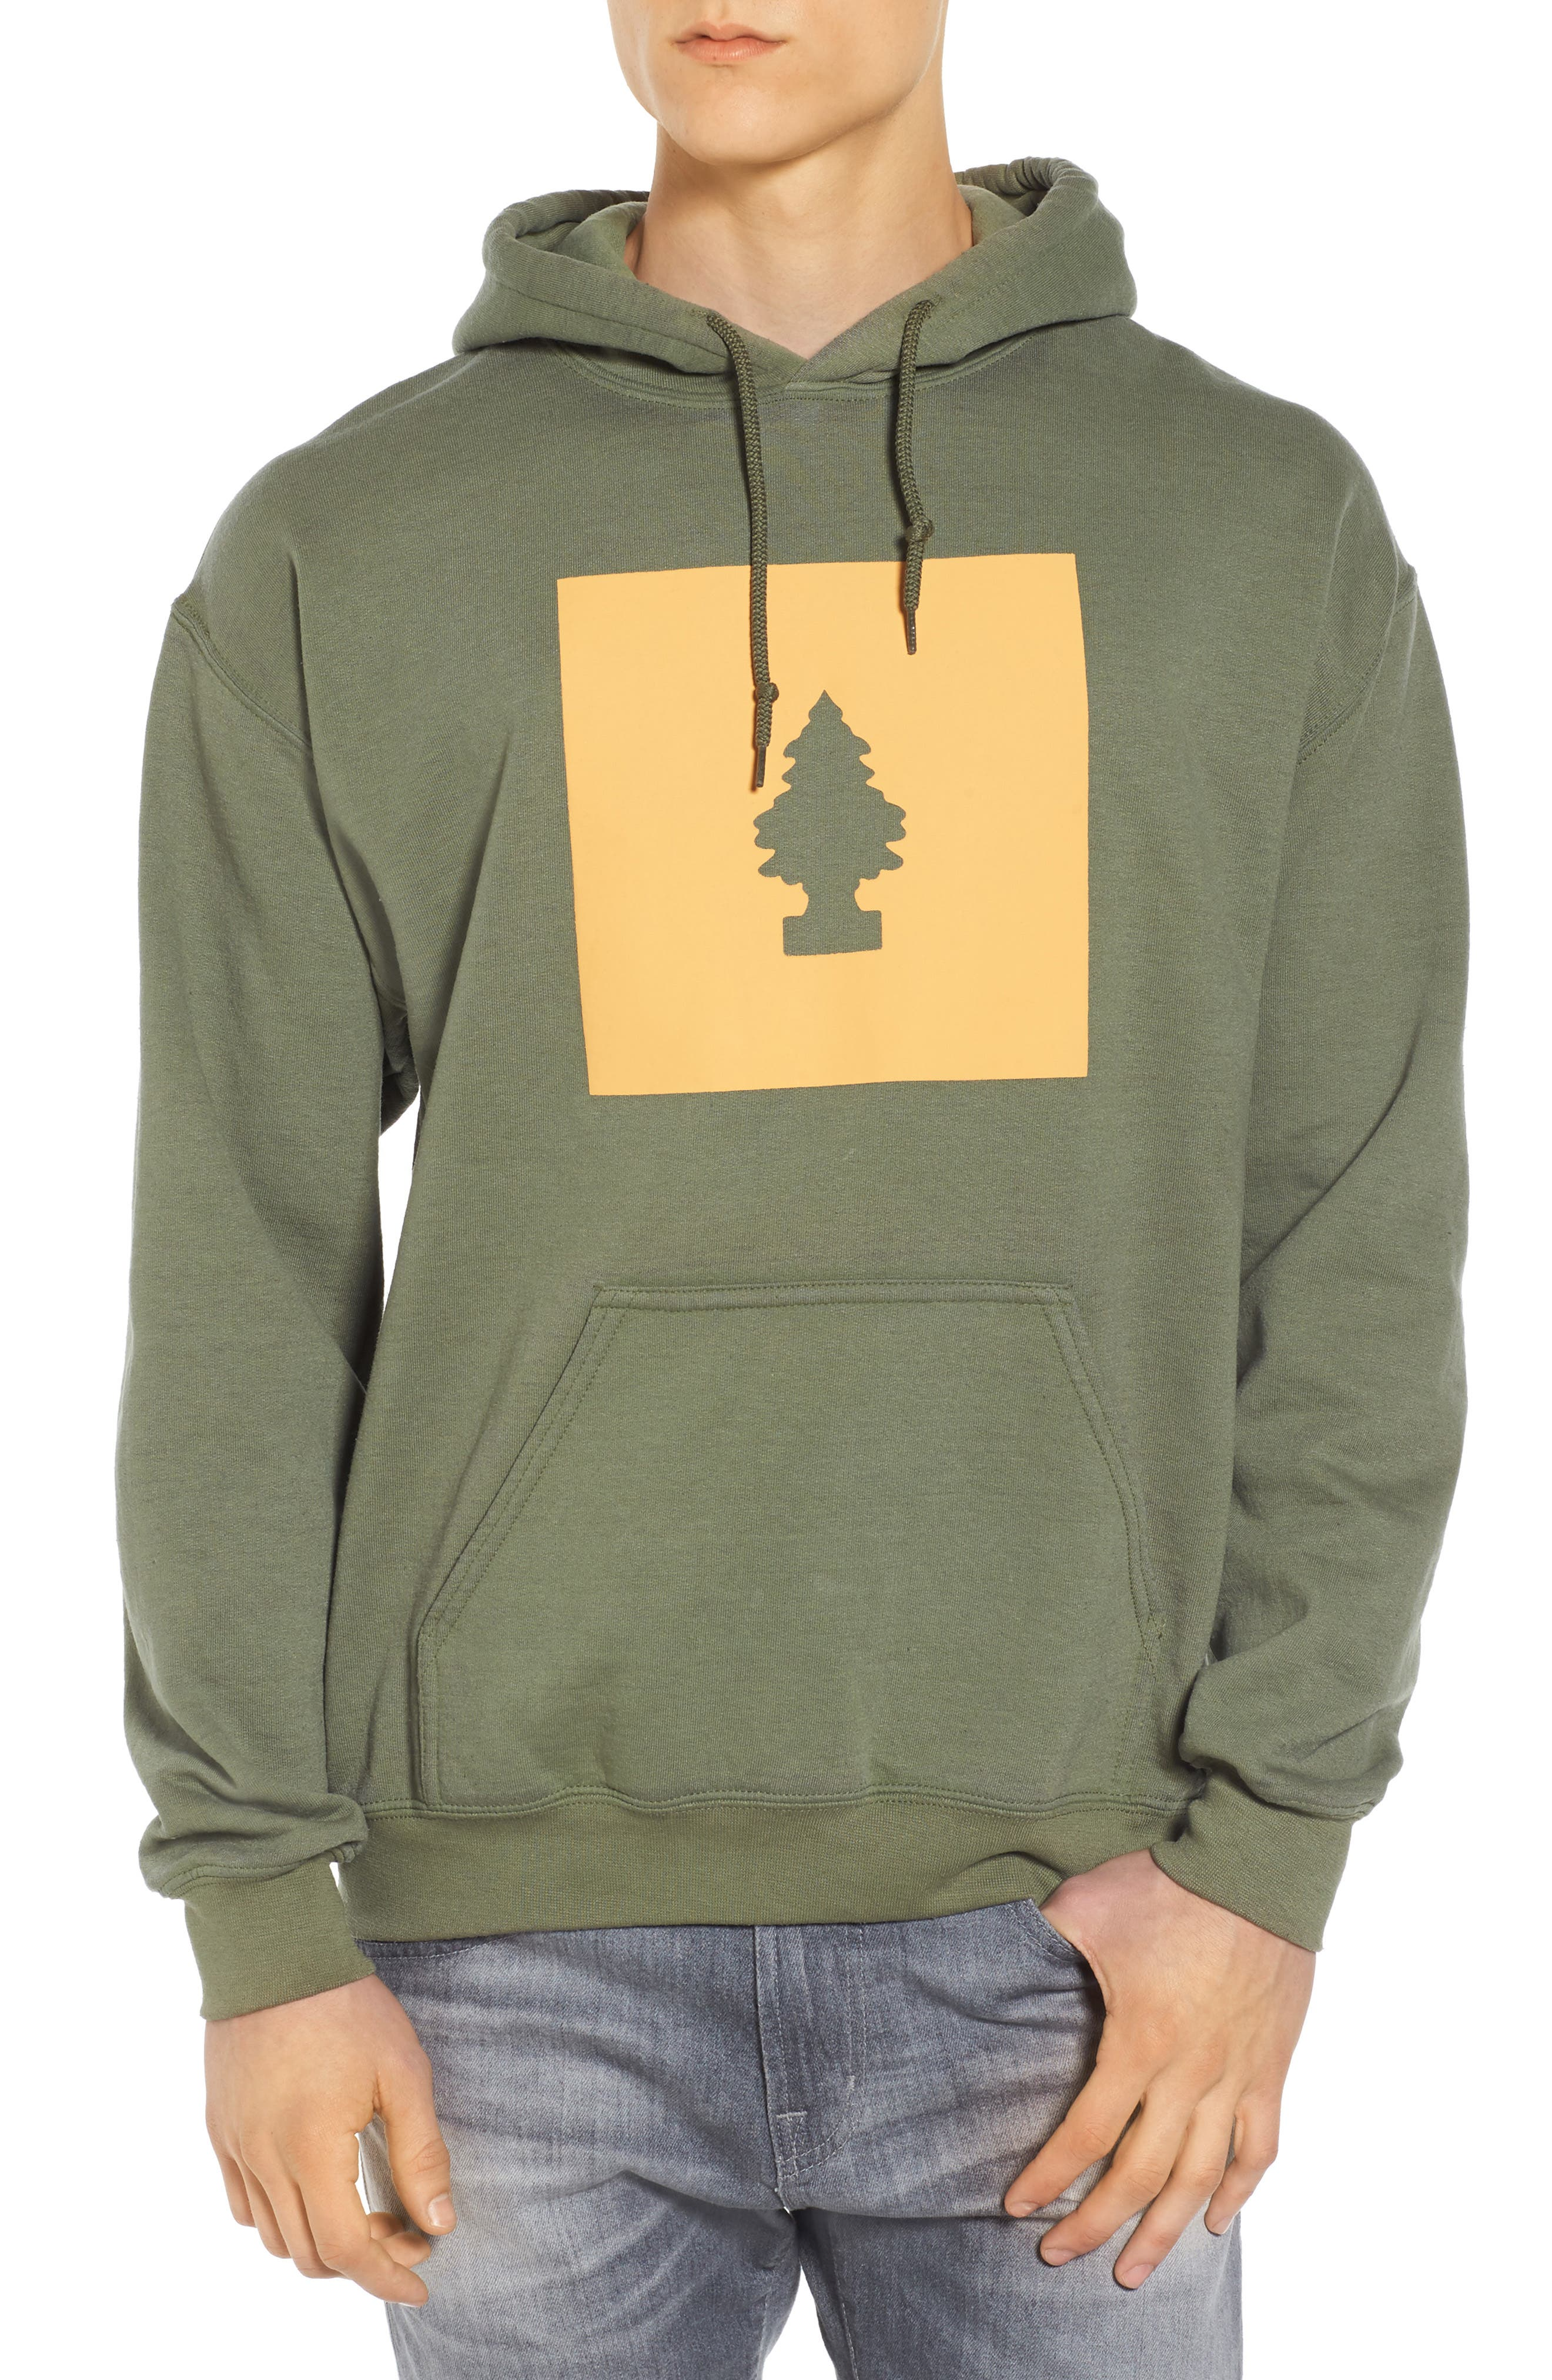 Happy Little Tree Hoodie,                         Main,                         color, 300